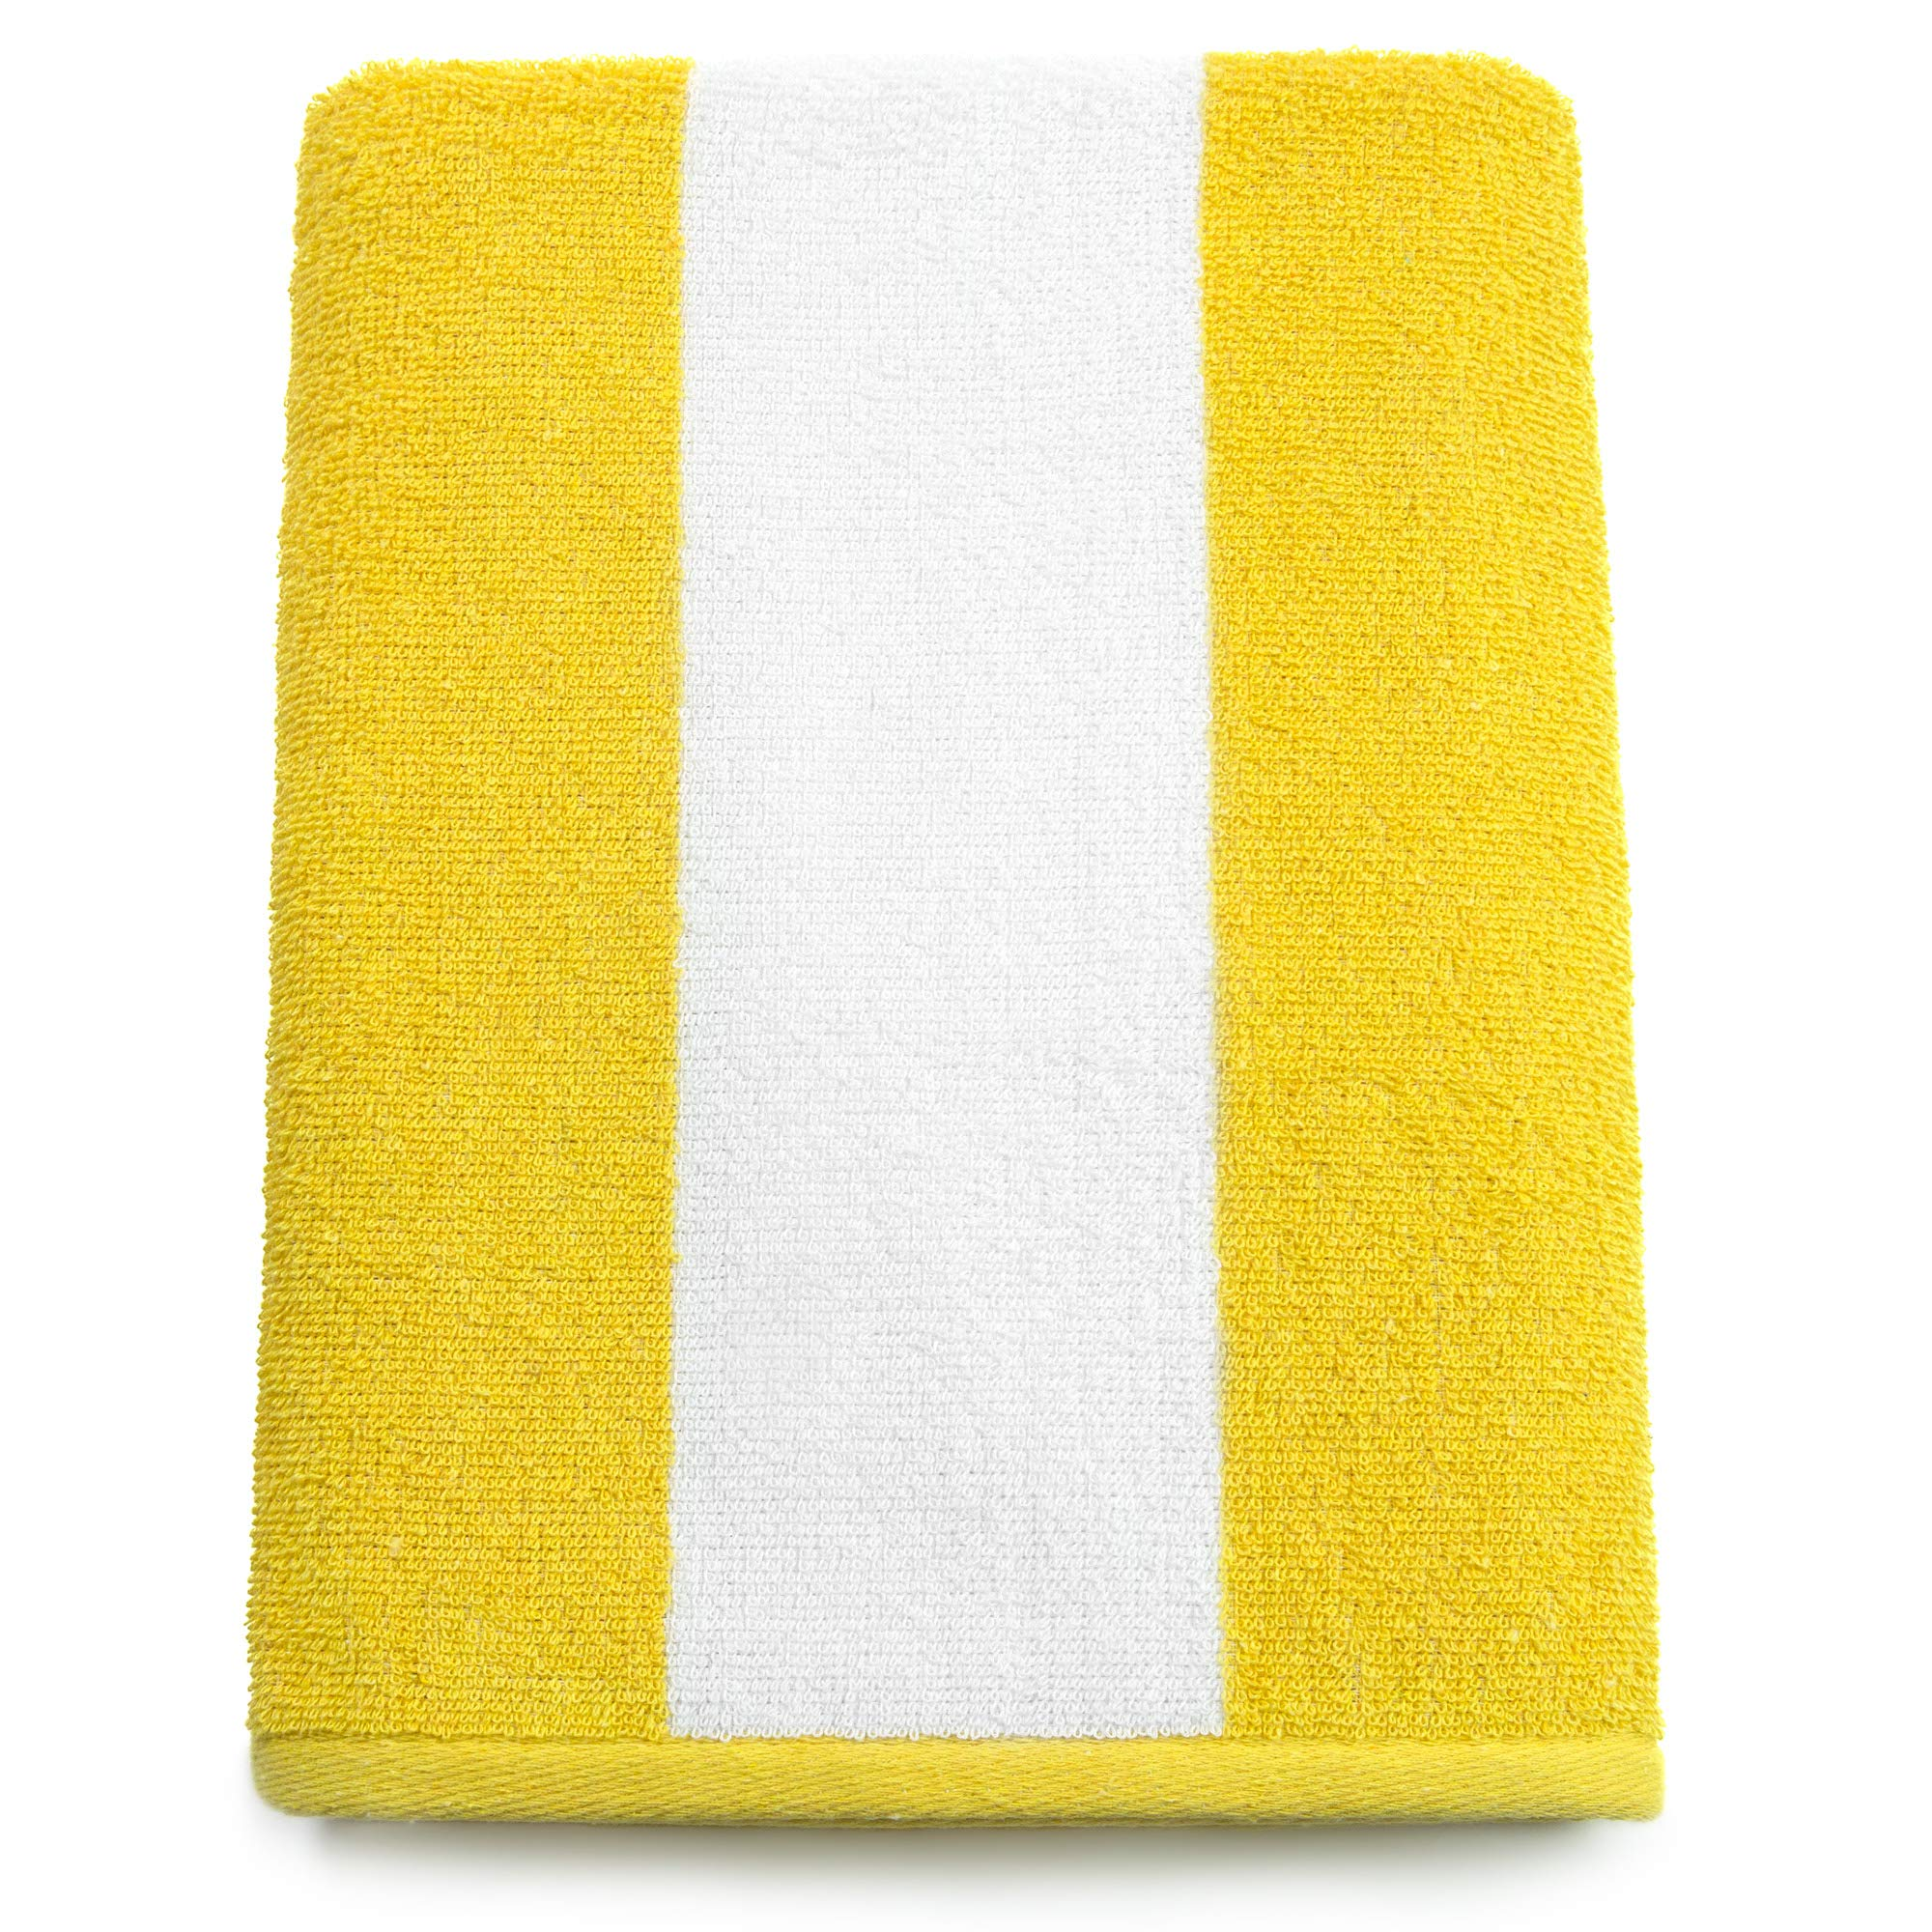 Cabana Beach and Pool Towel 6 Pack - 30in x 60in Soft and Absorbent Terry Loop (Royal, Turquoise, Green, Yellow, Orange, Pink) by Softerry (Image #9)